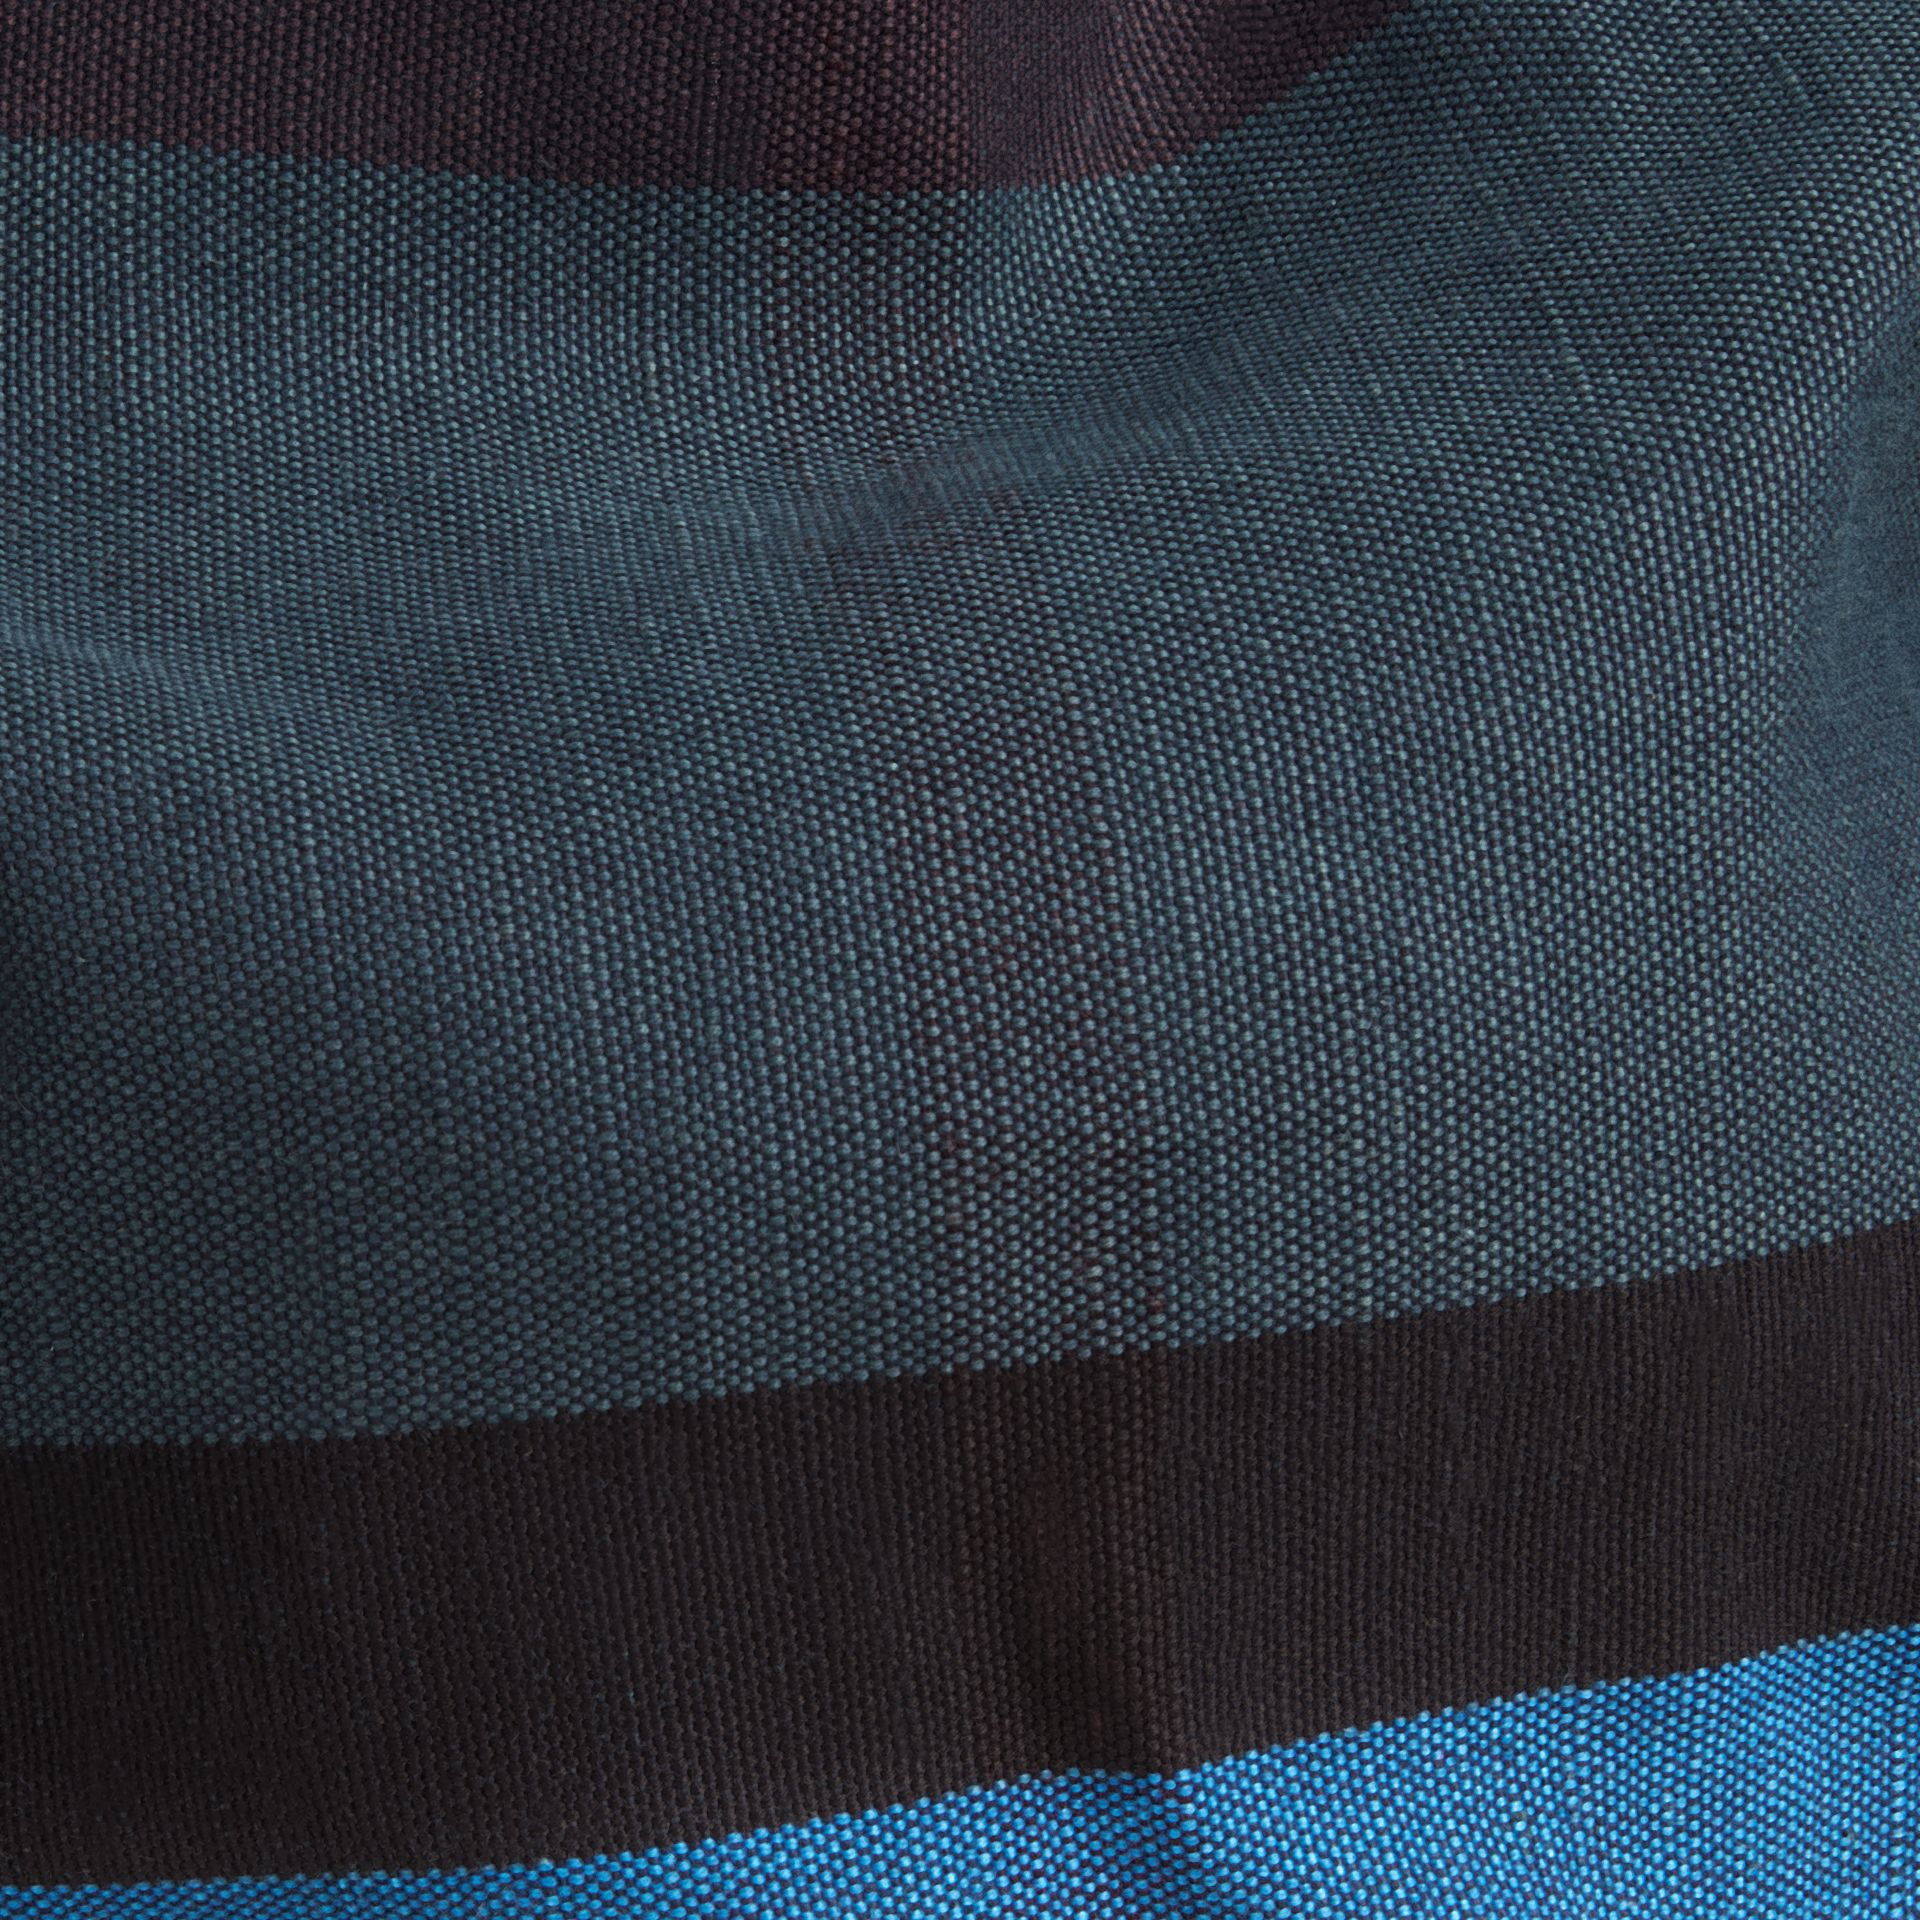 Ultramarine blue The Medium Ashby in Overdyed Canvas Check and Leather - gallery image 6